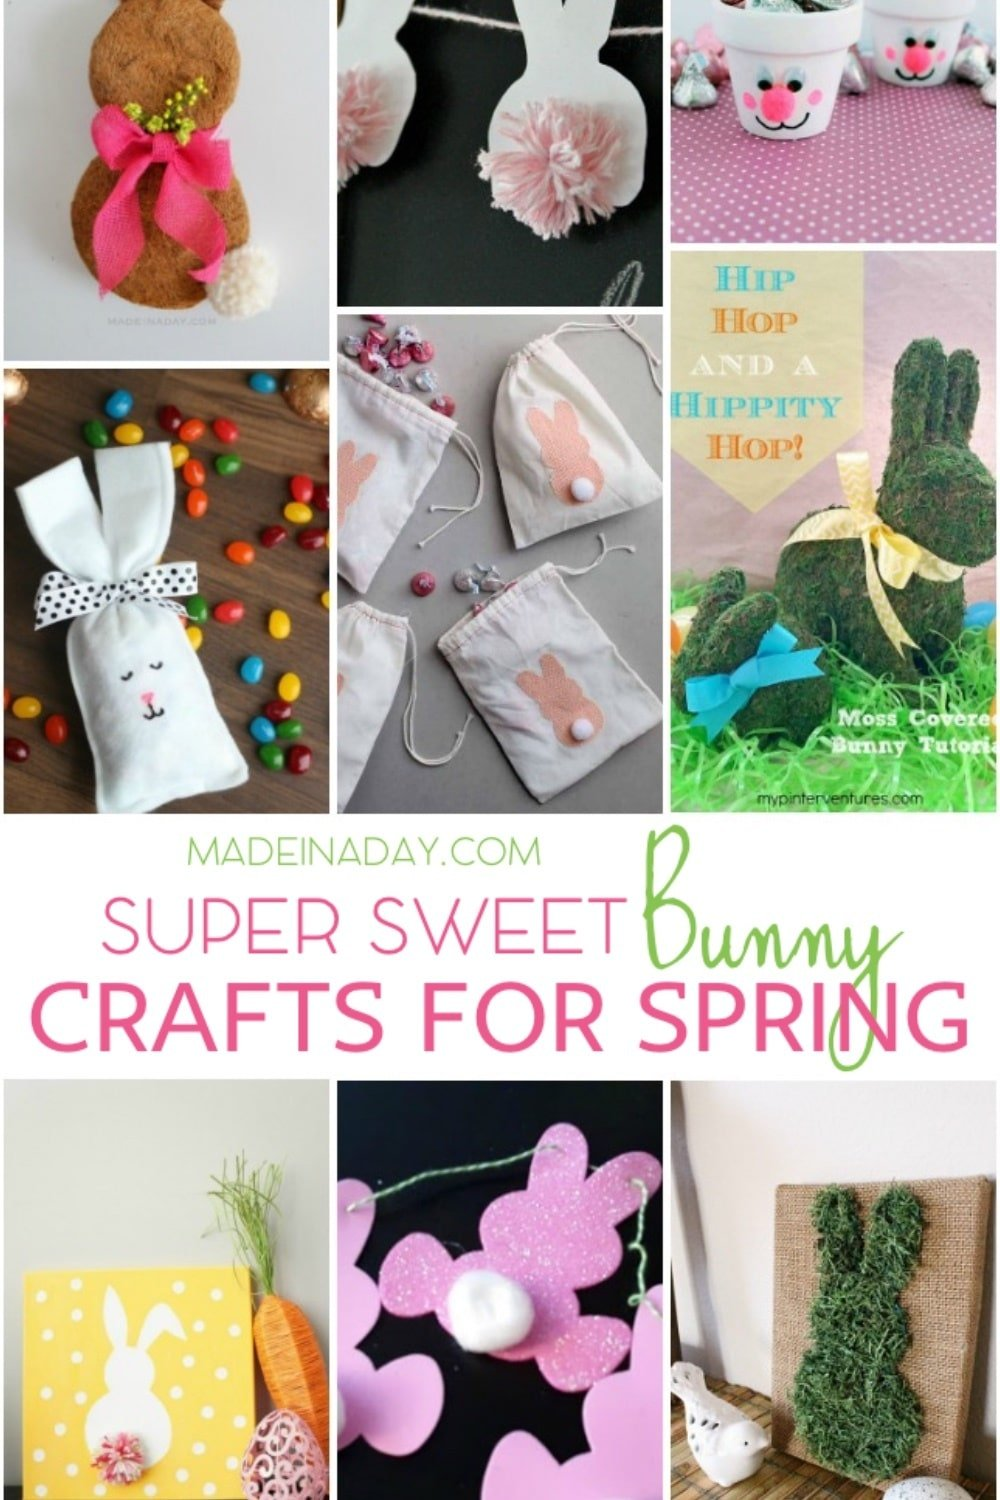 Easter Bunny Crafts for Spring